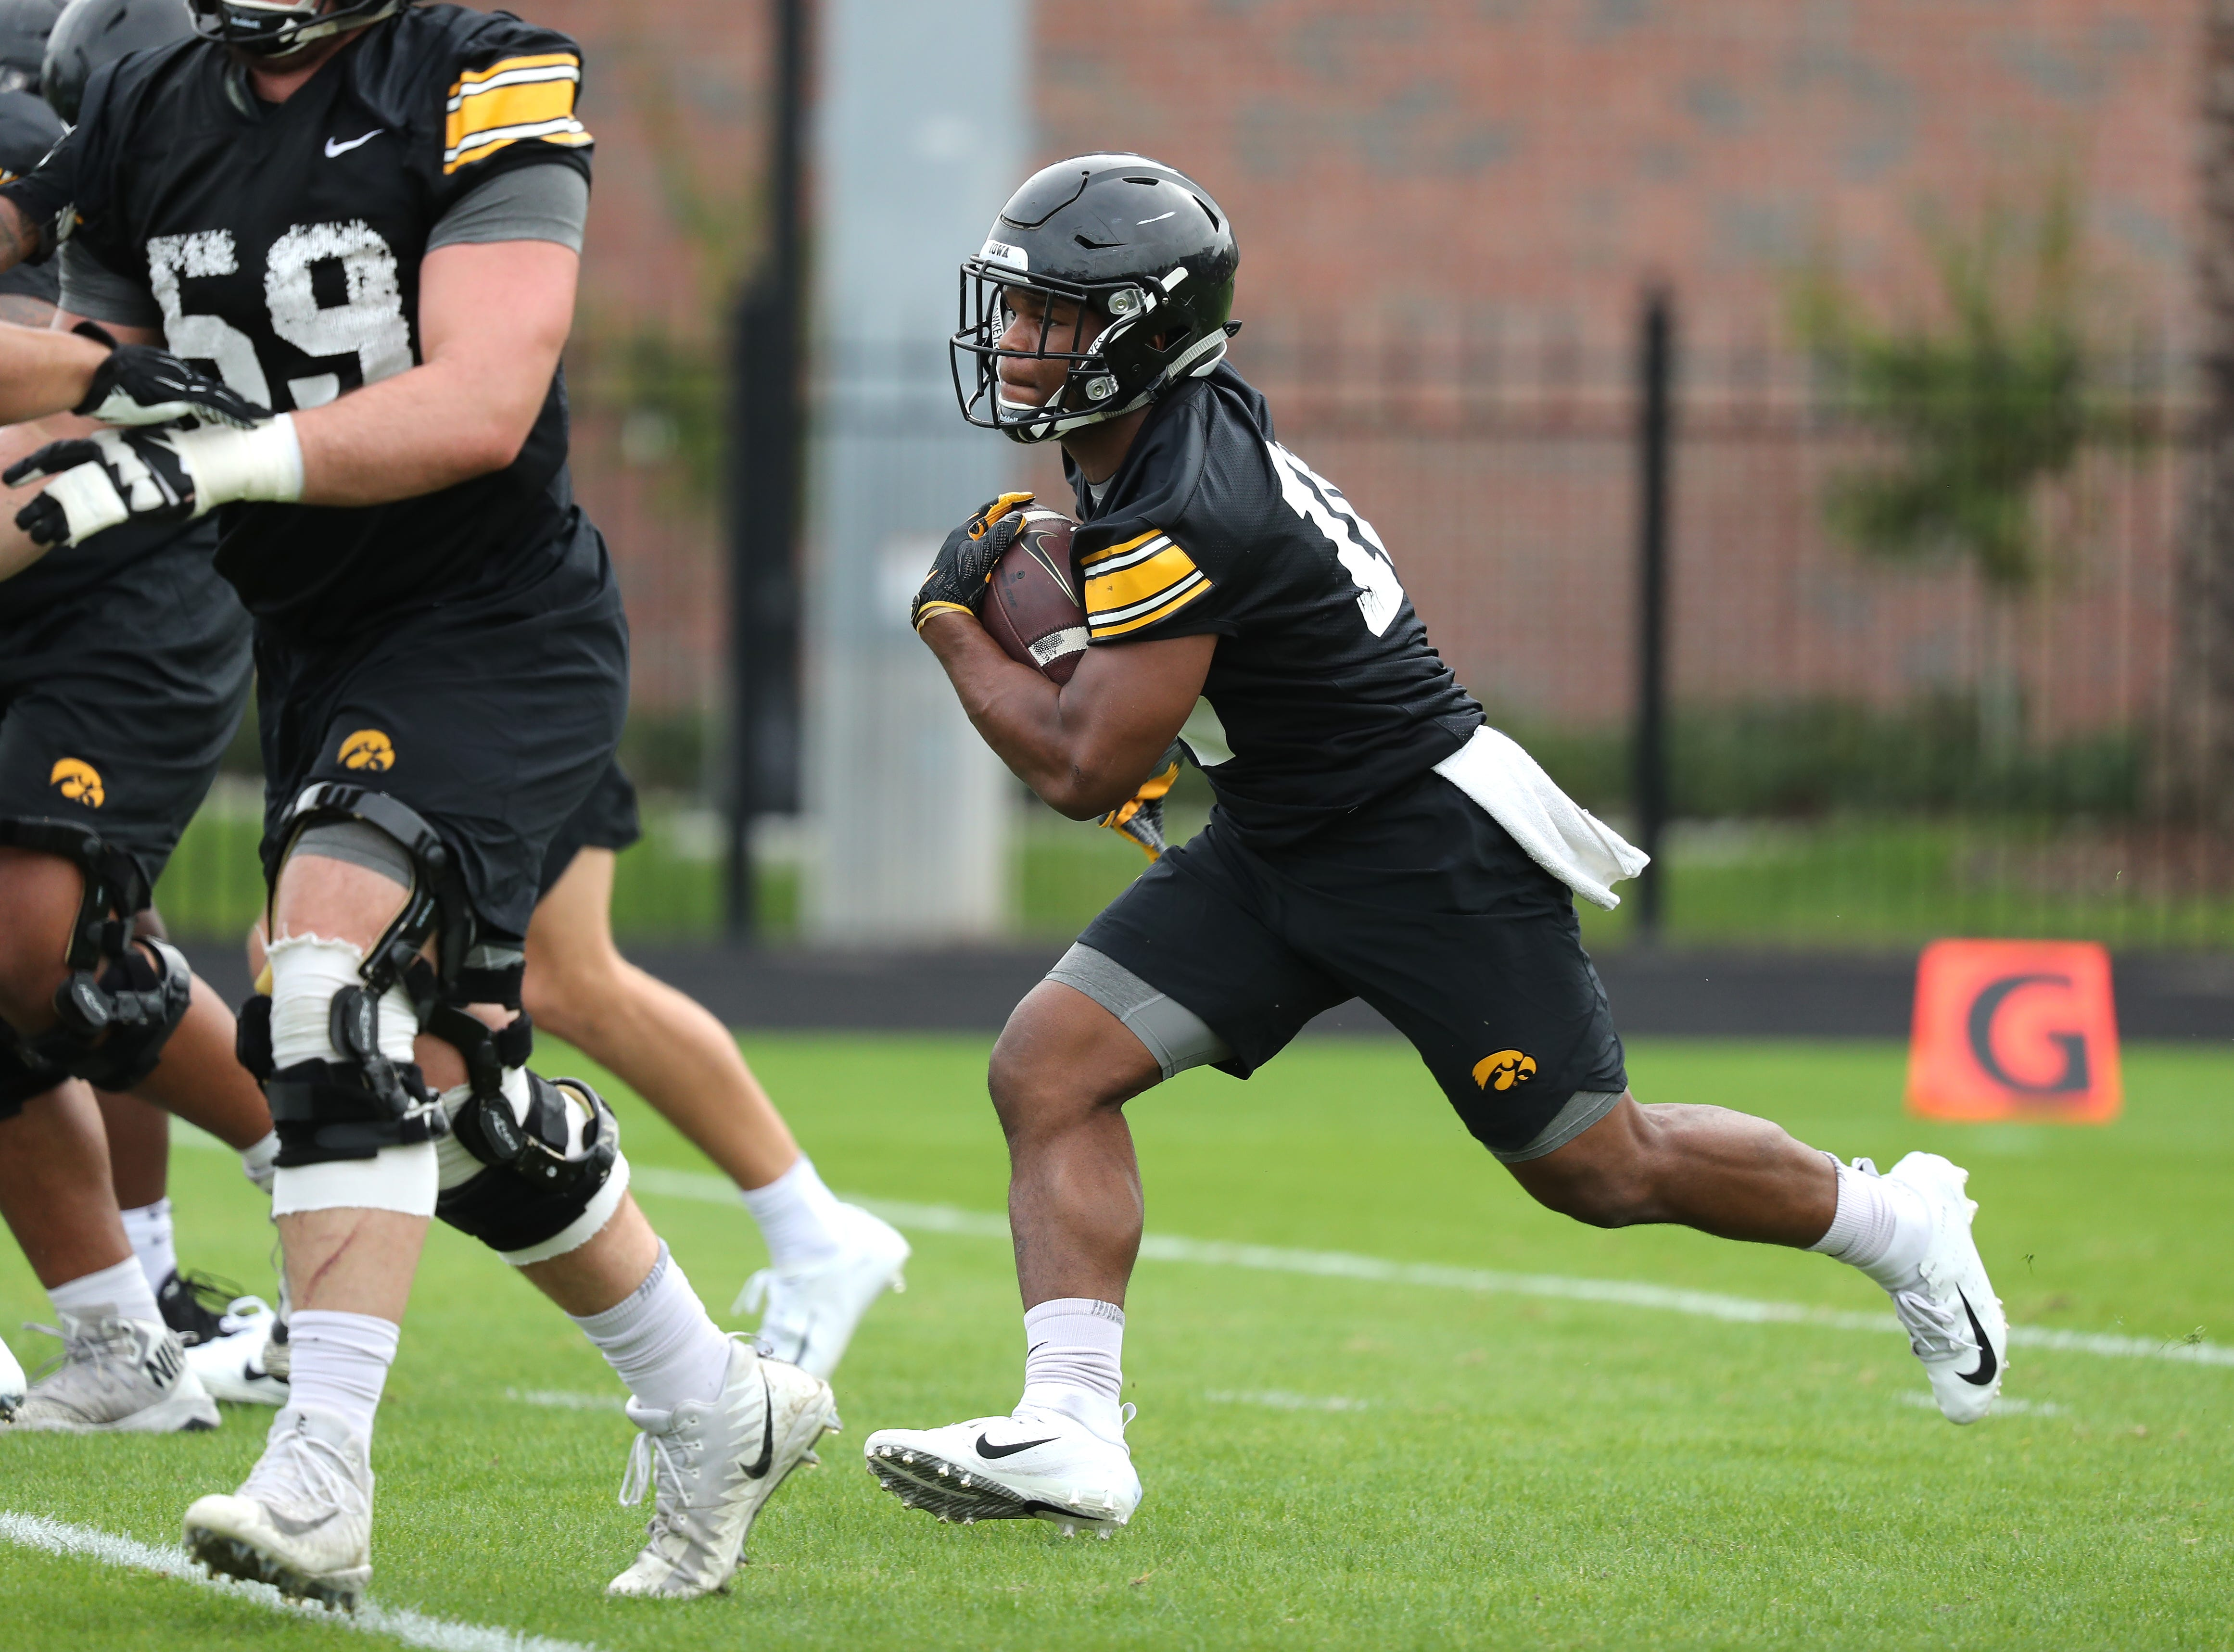 Iowa Hawkeyes running back Mekhi Sargent (10) during the team's first Outback Bowl Practice in Florida Thursday, December 27, 2018 at Tampa University.